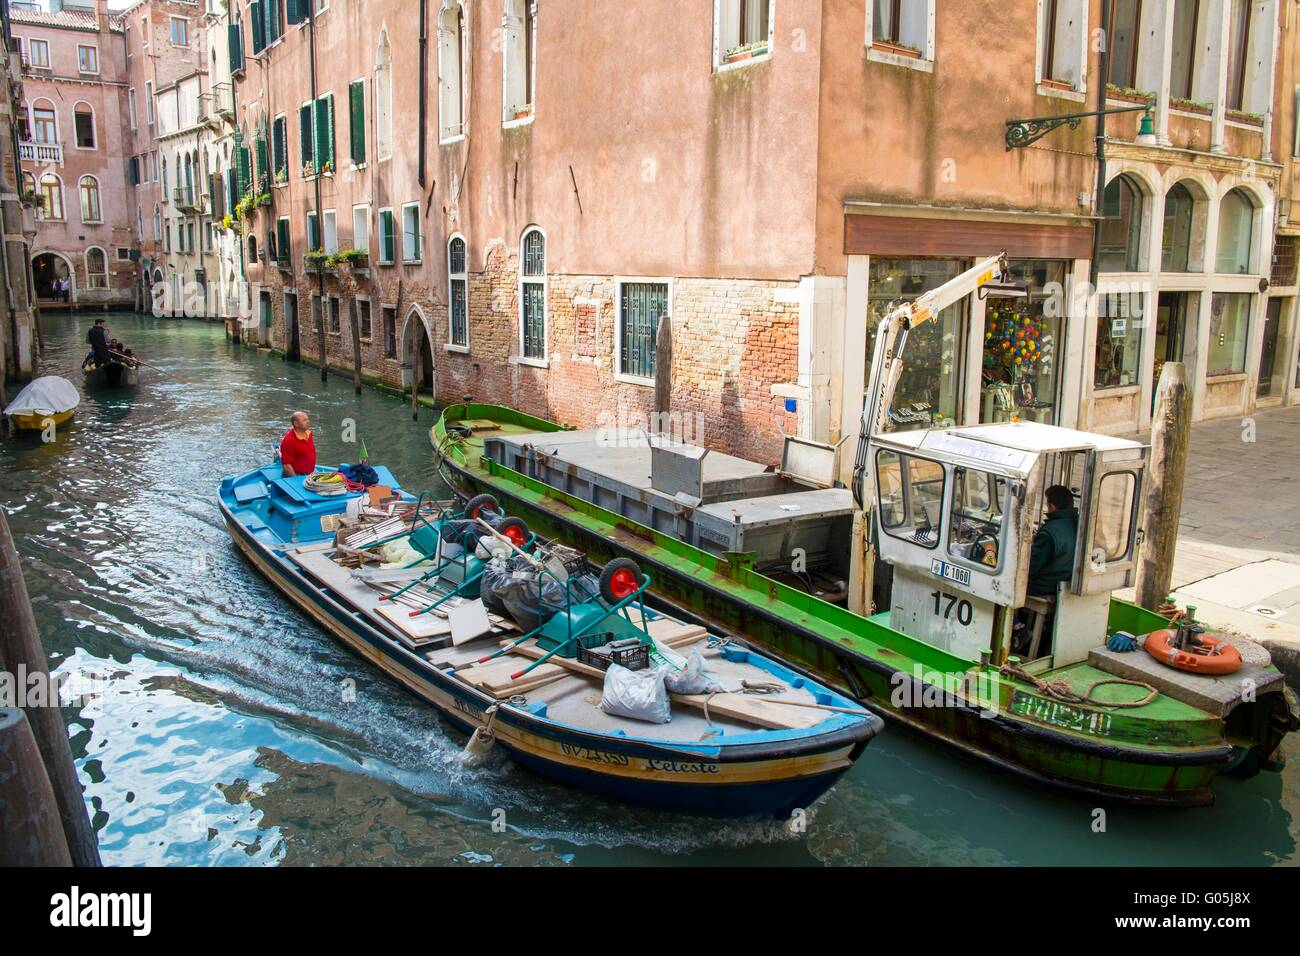 A builders canal boat passes a refuse barge on a venetian waterway, Venice, Italy, April - Stock Image